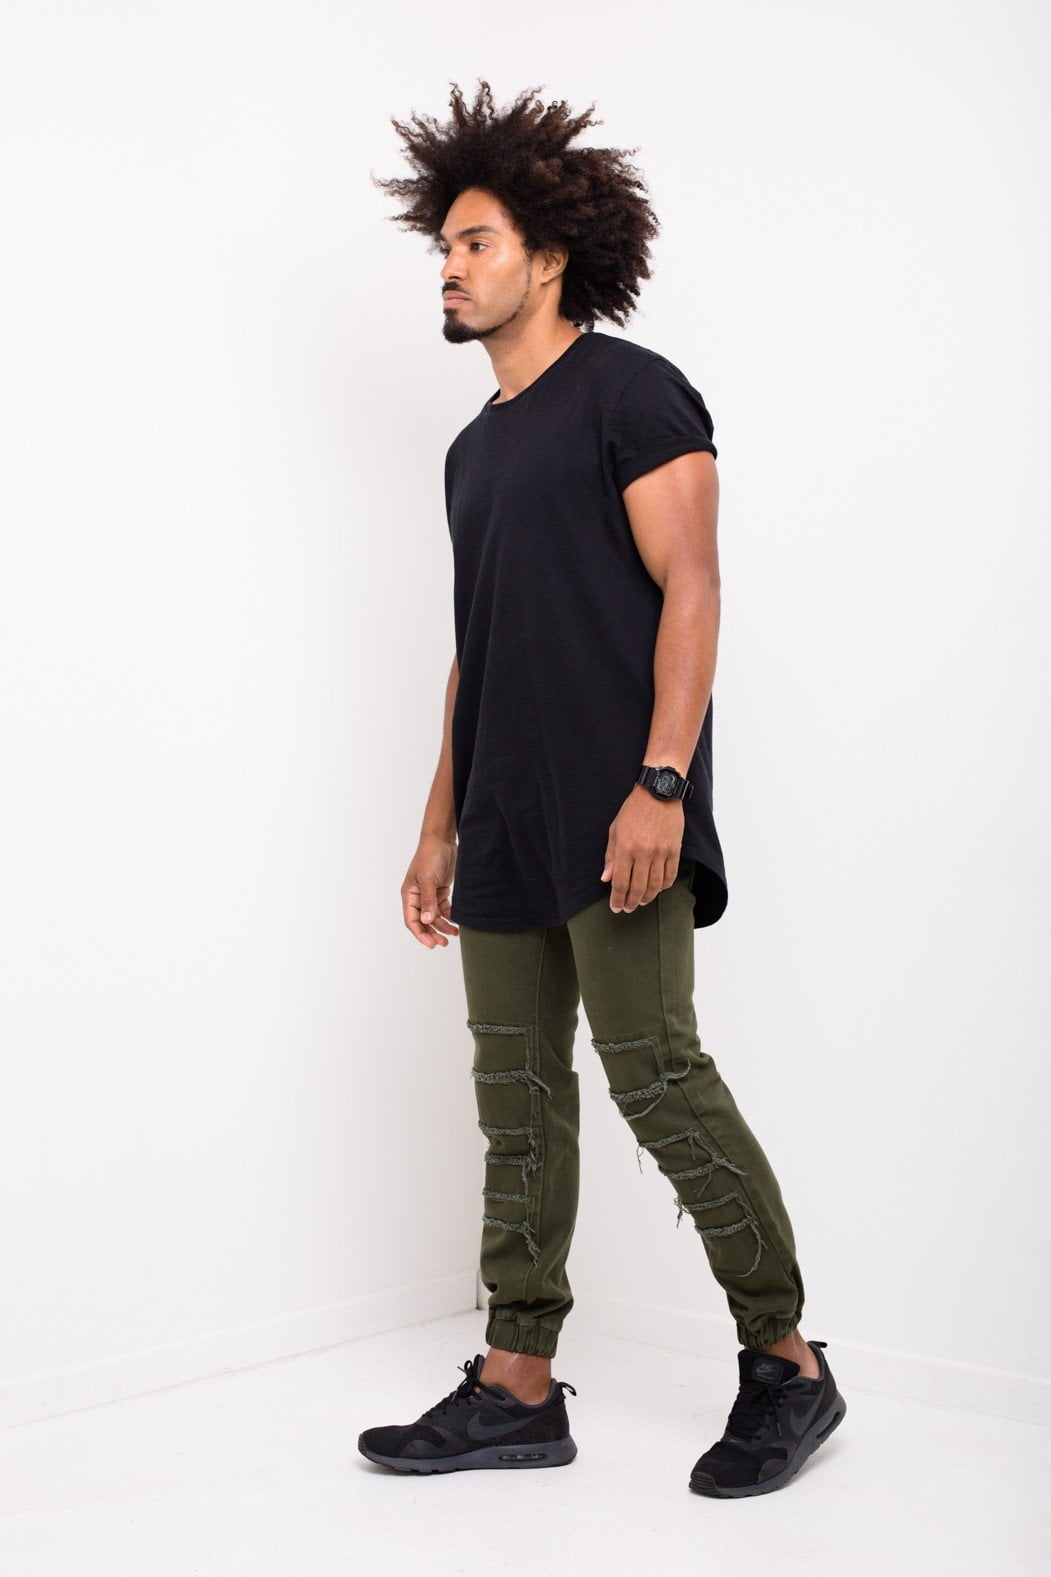 Charleston Distressed Drop Crotch Jogger In Khaki - Liquor N Poker  Liquor N Poker